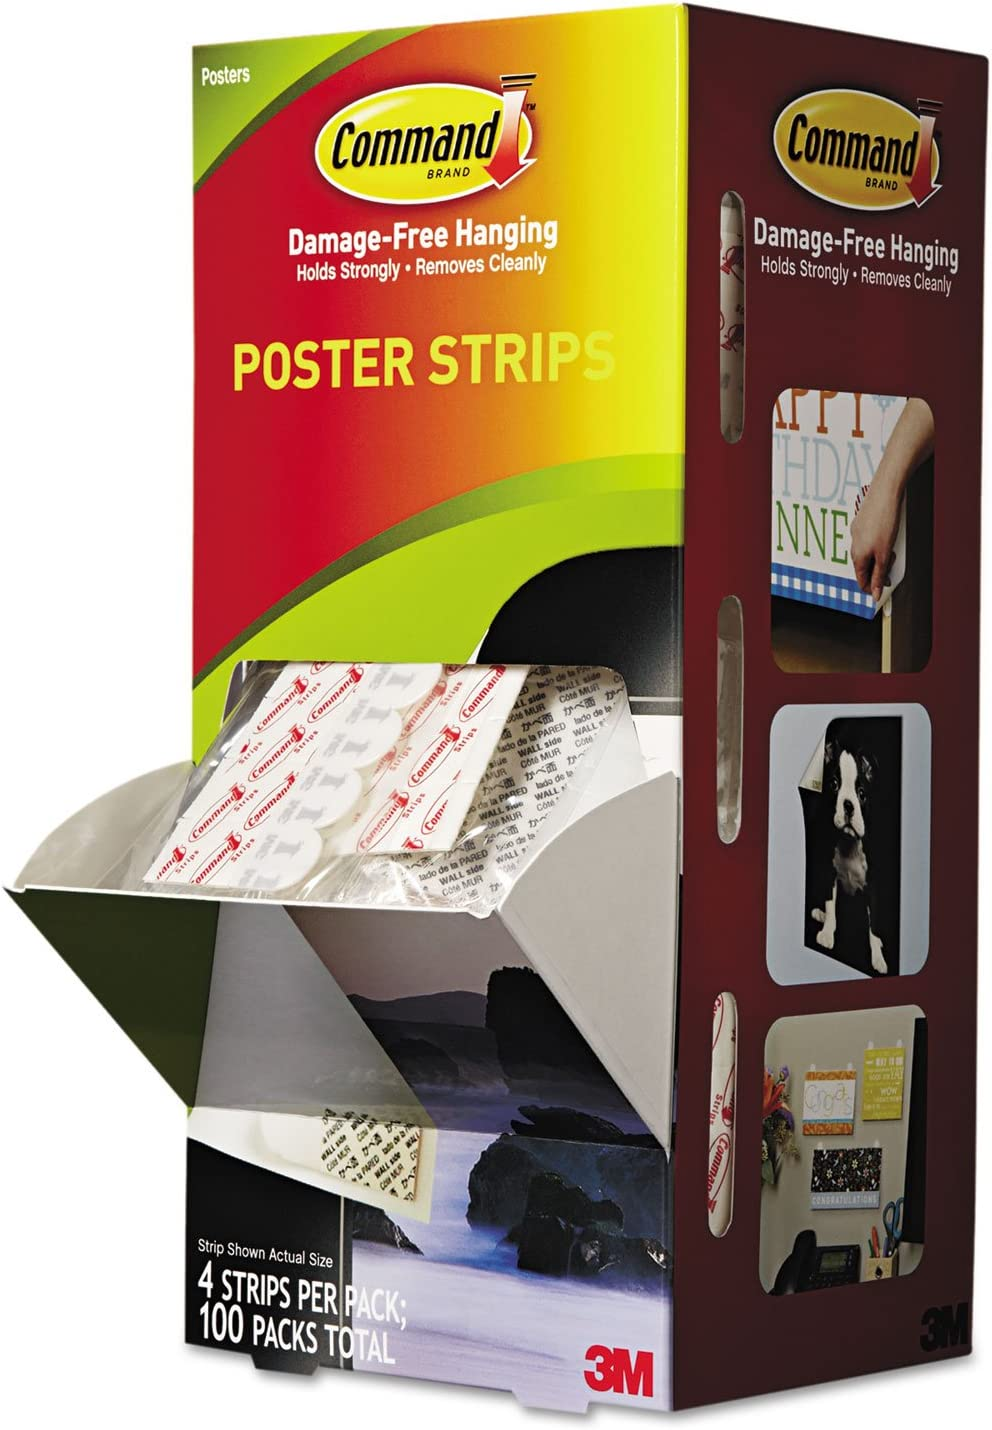 3M 3/4 x 2 1/8 Inches Command Poster Strips, White, 100/Carton (MMM17024CABPK)